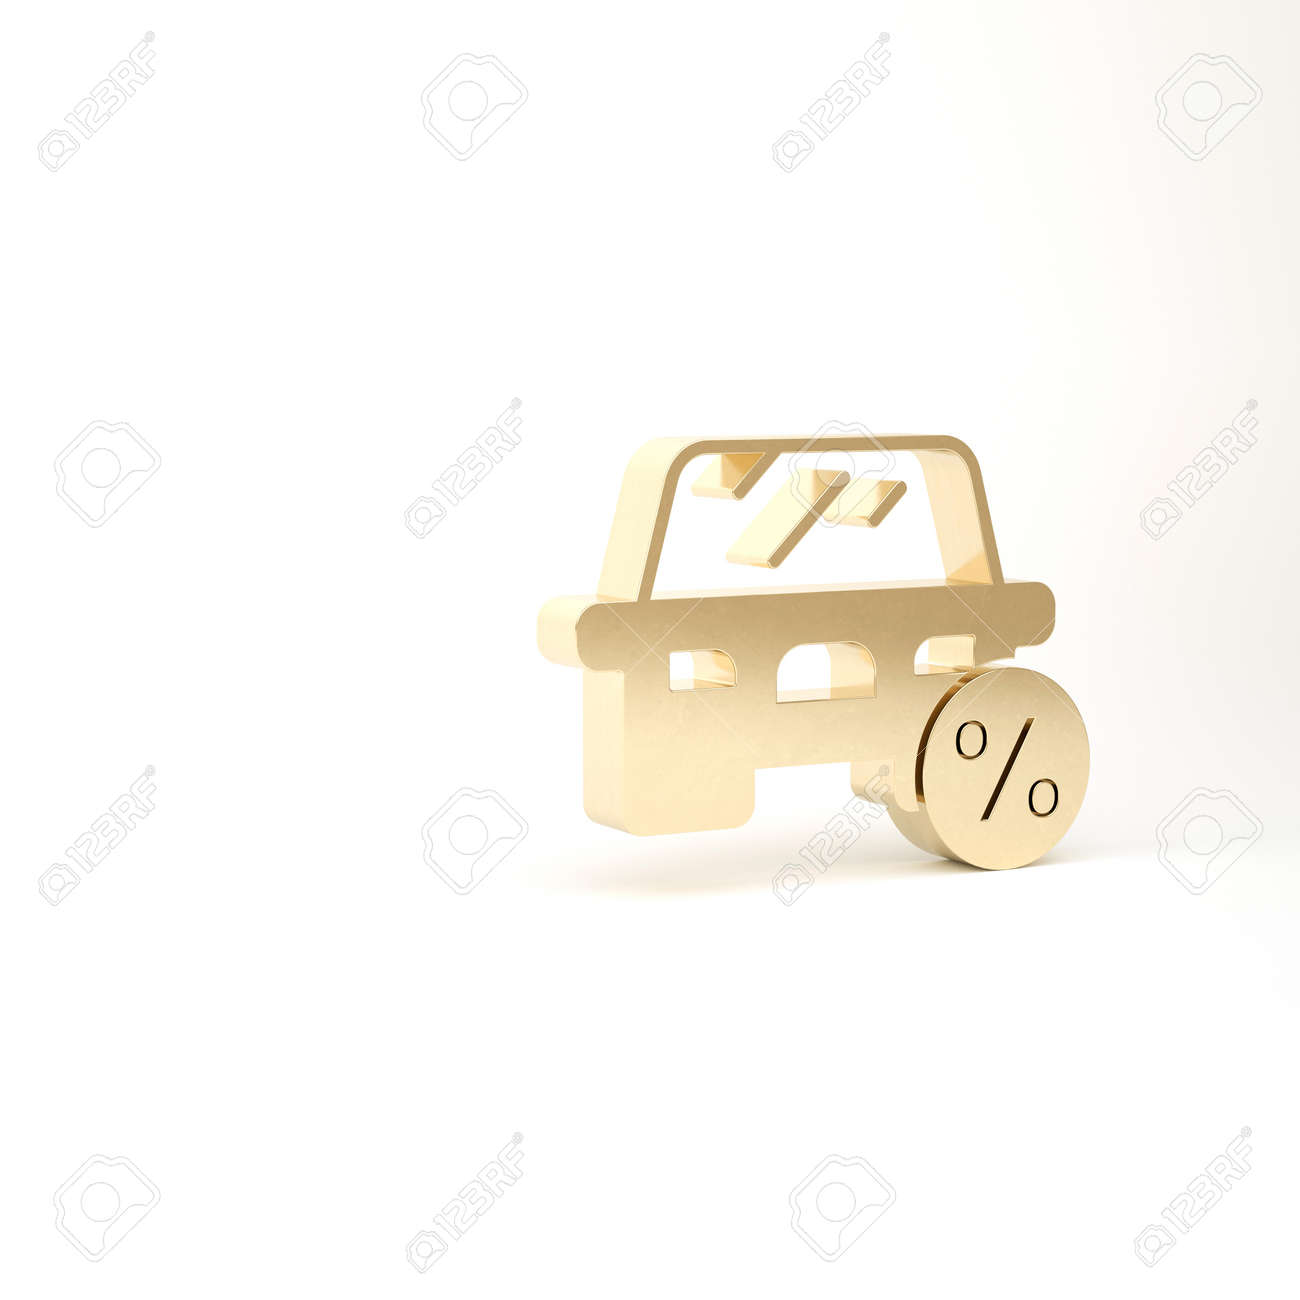 Gold Car leasing percent icon isolated on white background. Credit percentage symbol. 3d illustration 3D render - 169803355